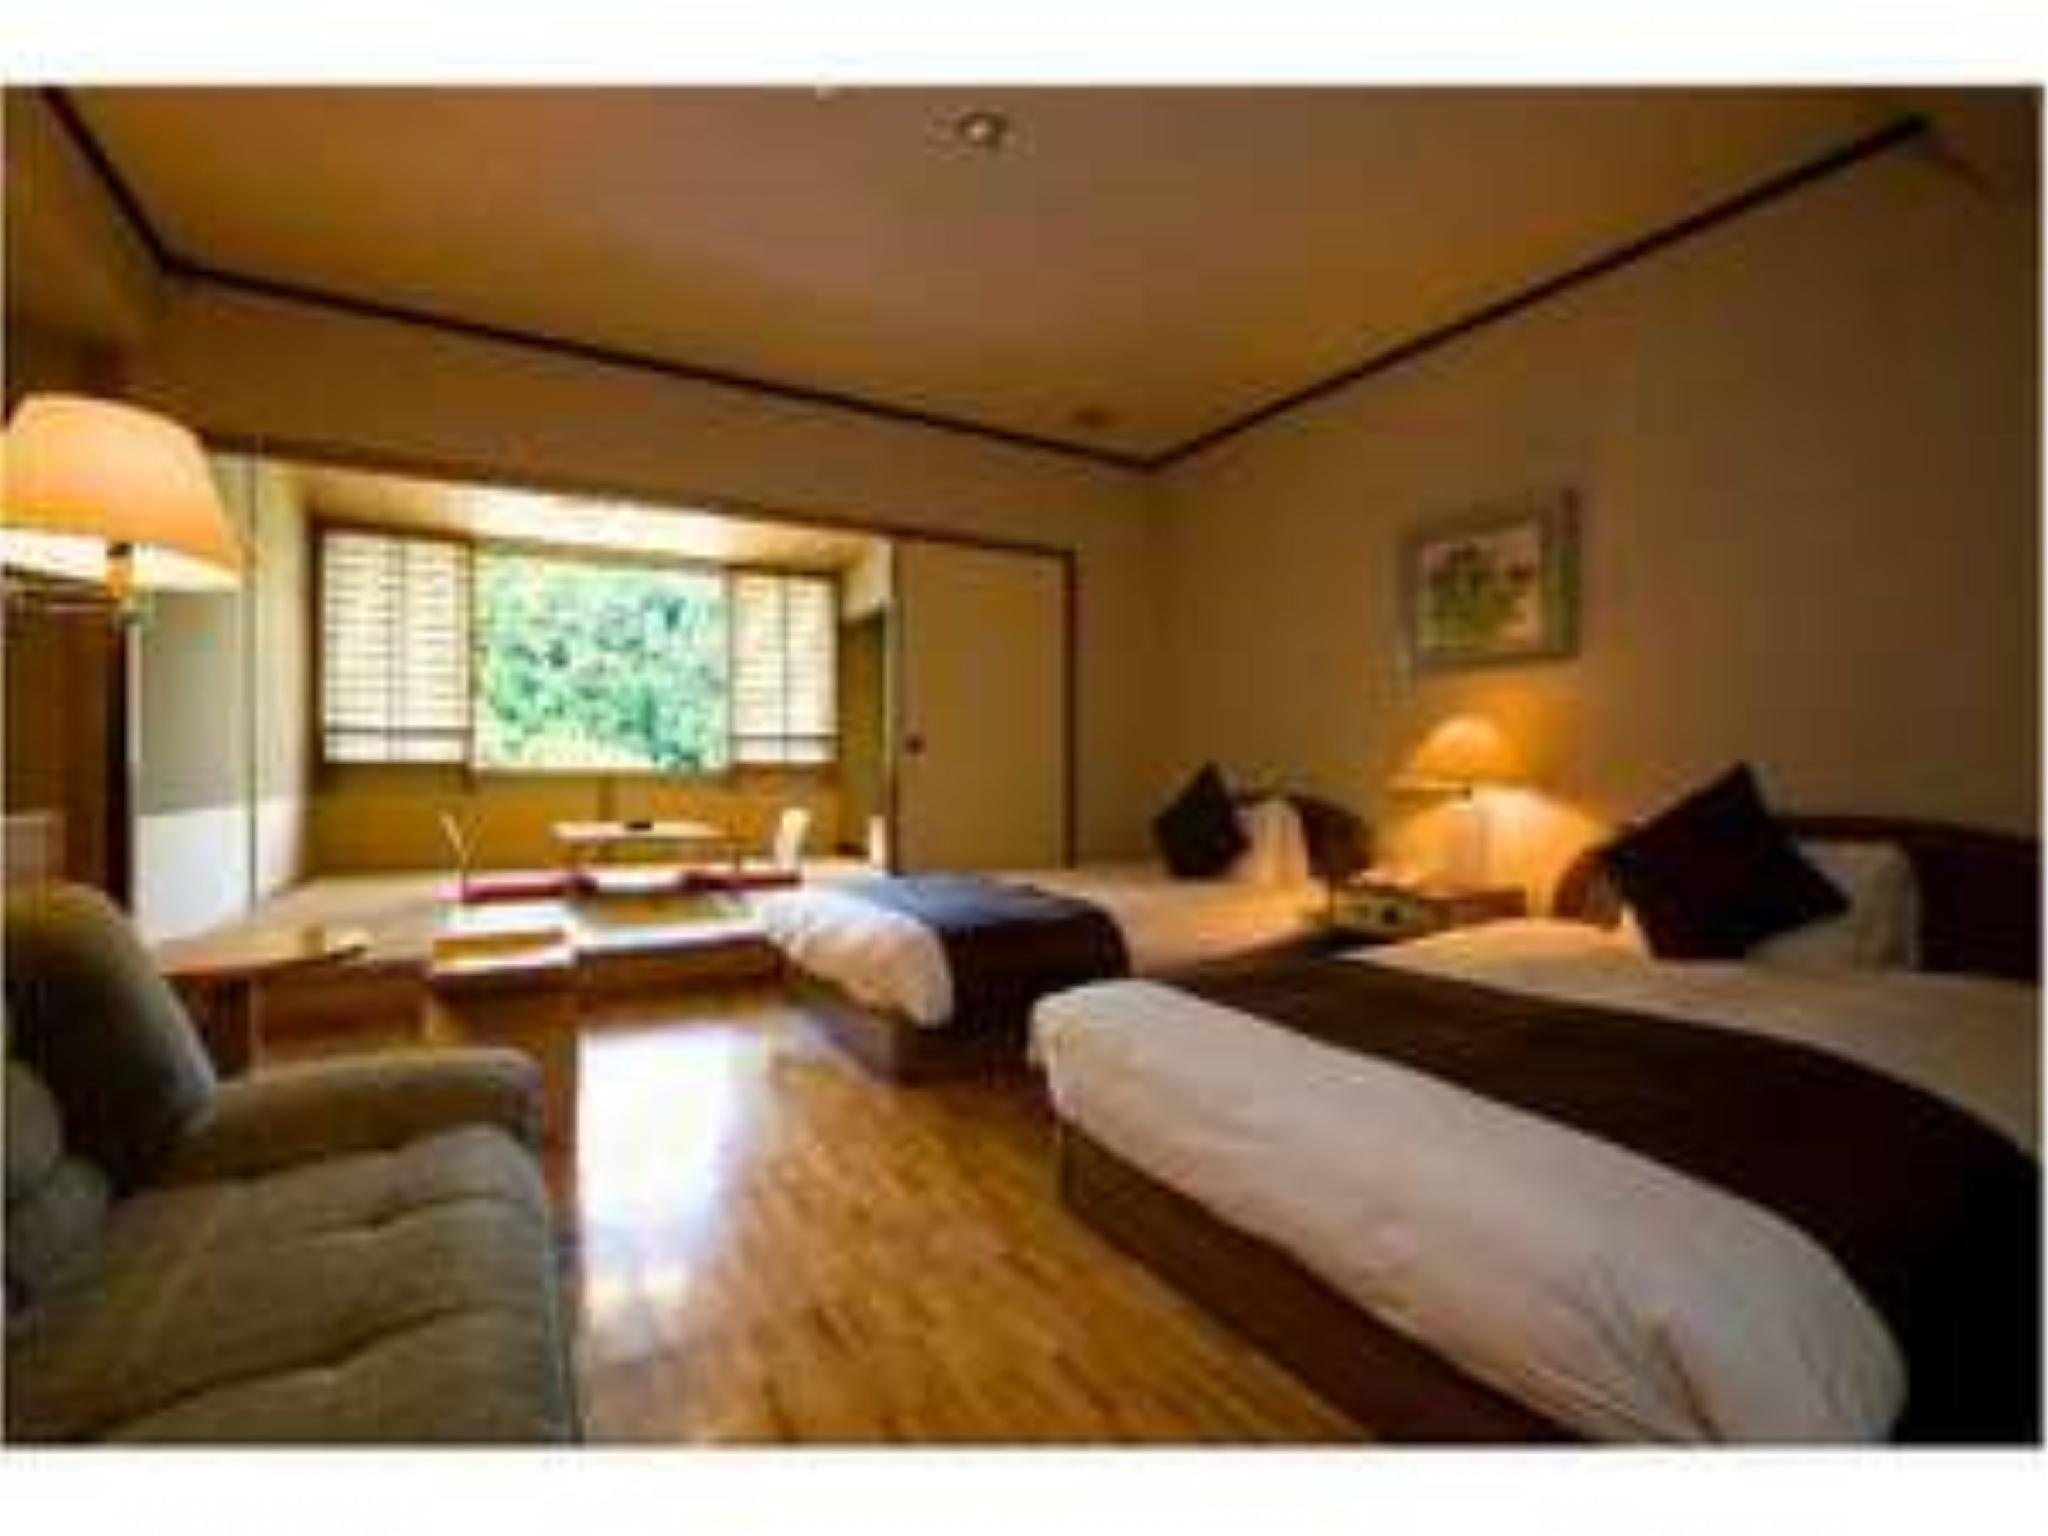 最頂樓 和洋式房(2張床) (Japanese/Western-style Room (2 Beds, Top Floor))